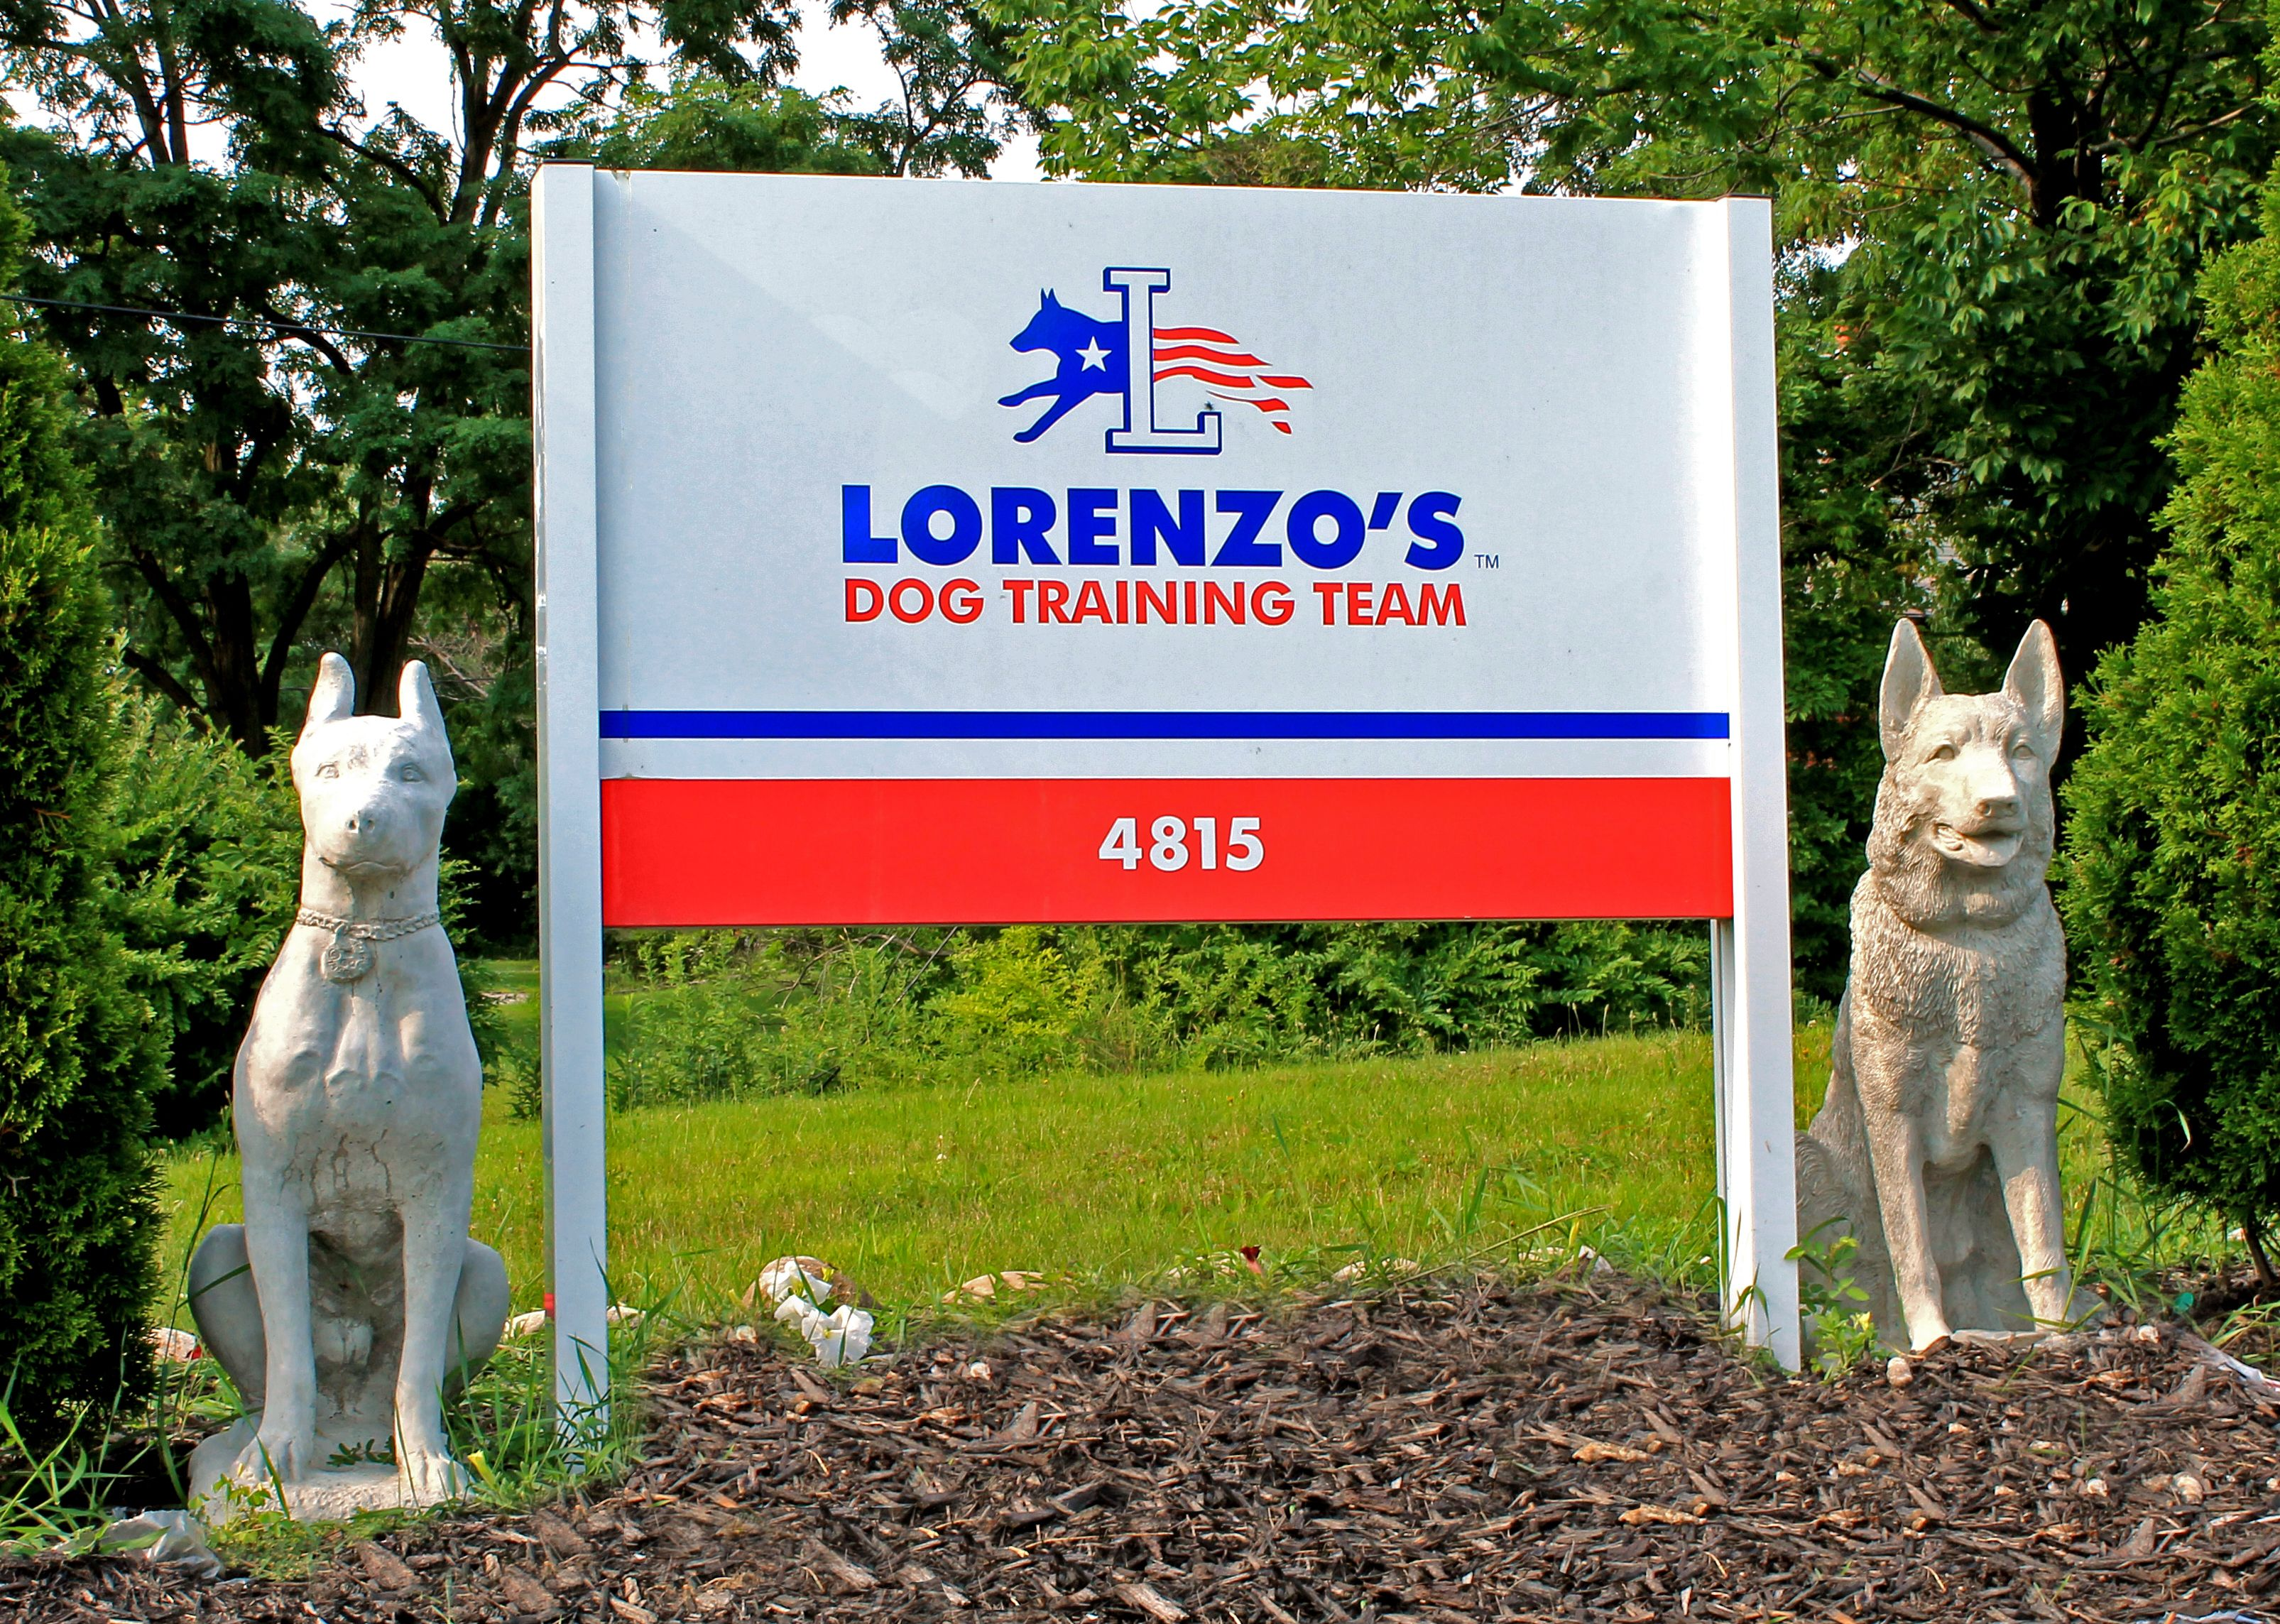 Lorenzo S Dog Training Team Training Center Located In Garfield